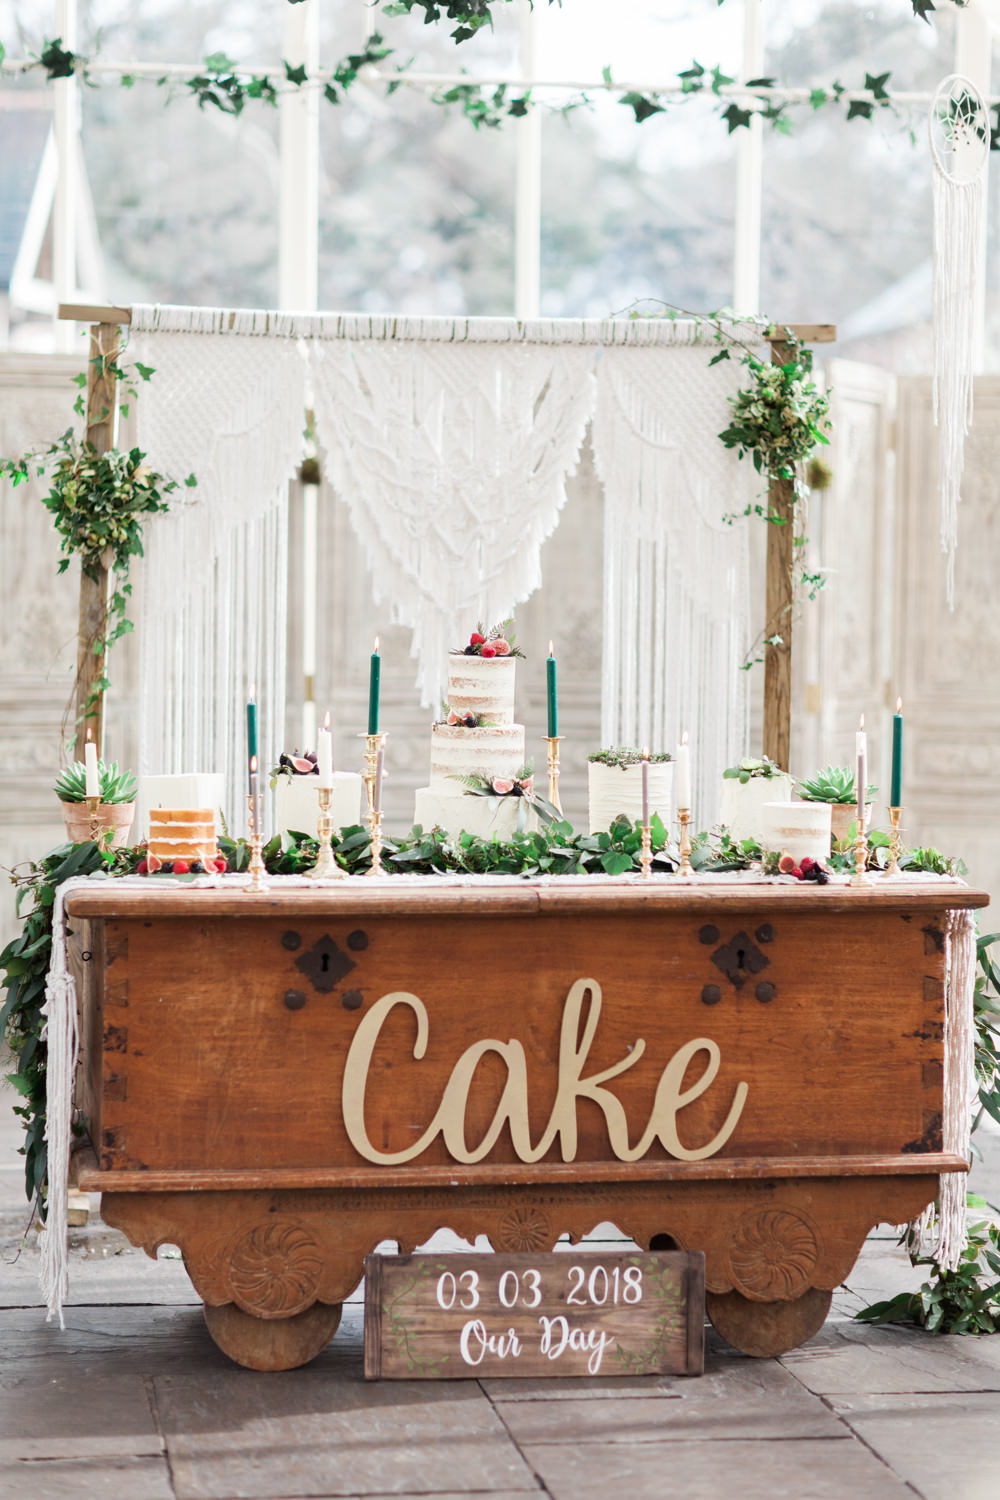 Cake Table Dessert Furniture Dresser Greenery Botanical Macrame Glass House Wedding Ideas Jo Bradbury Photography